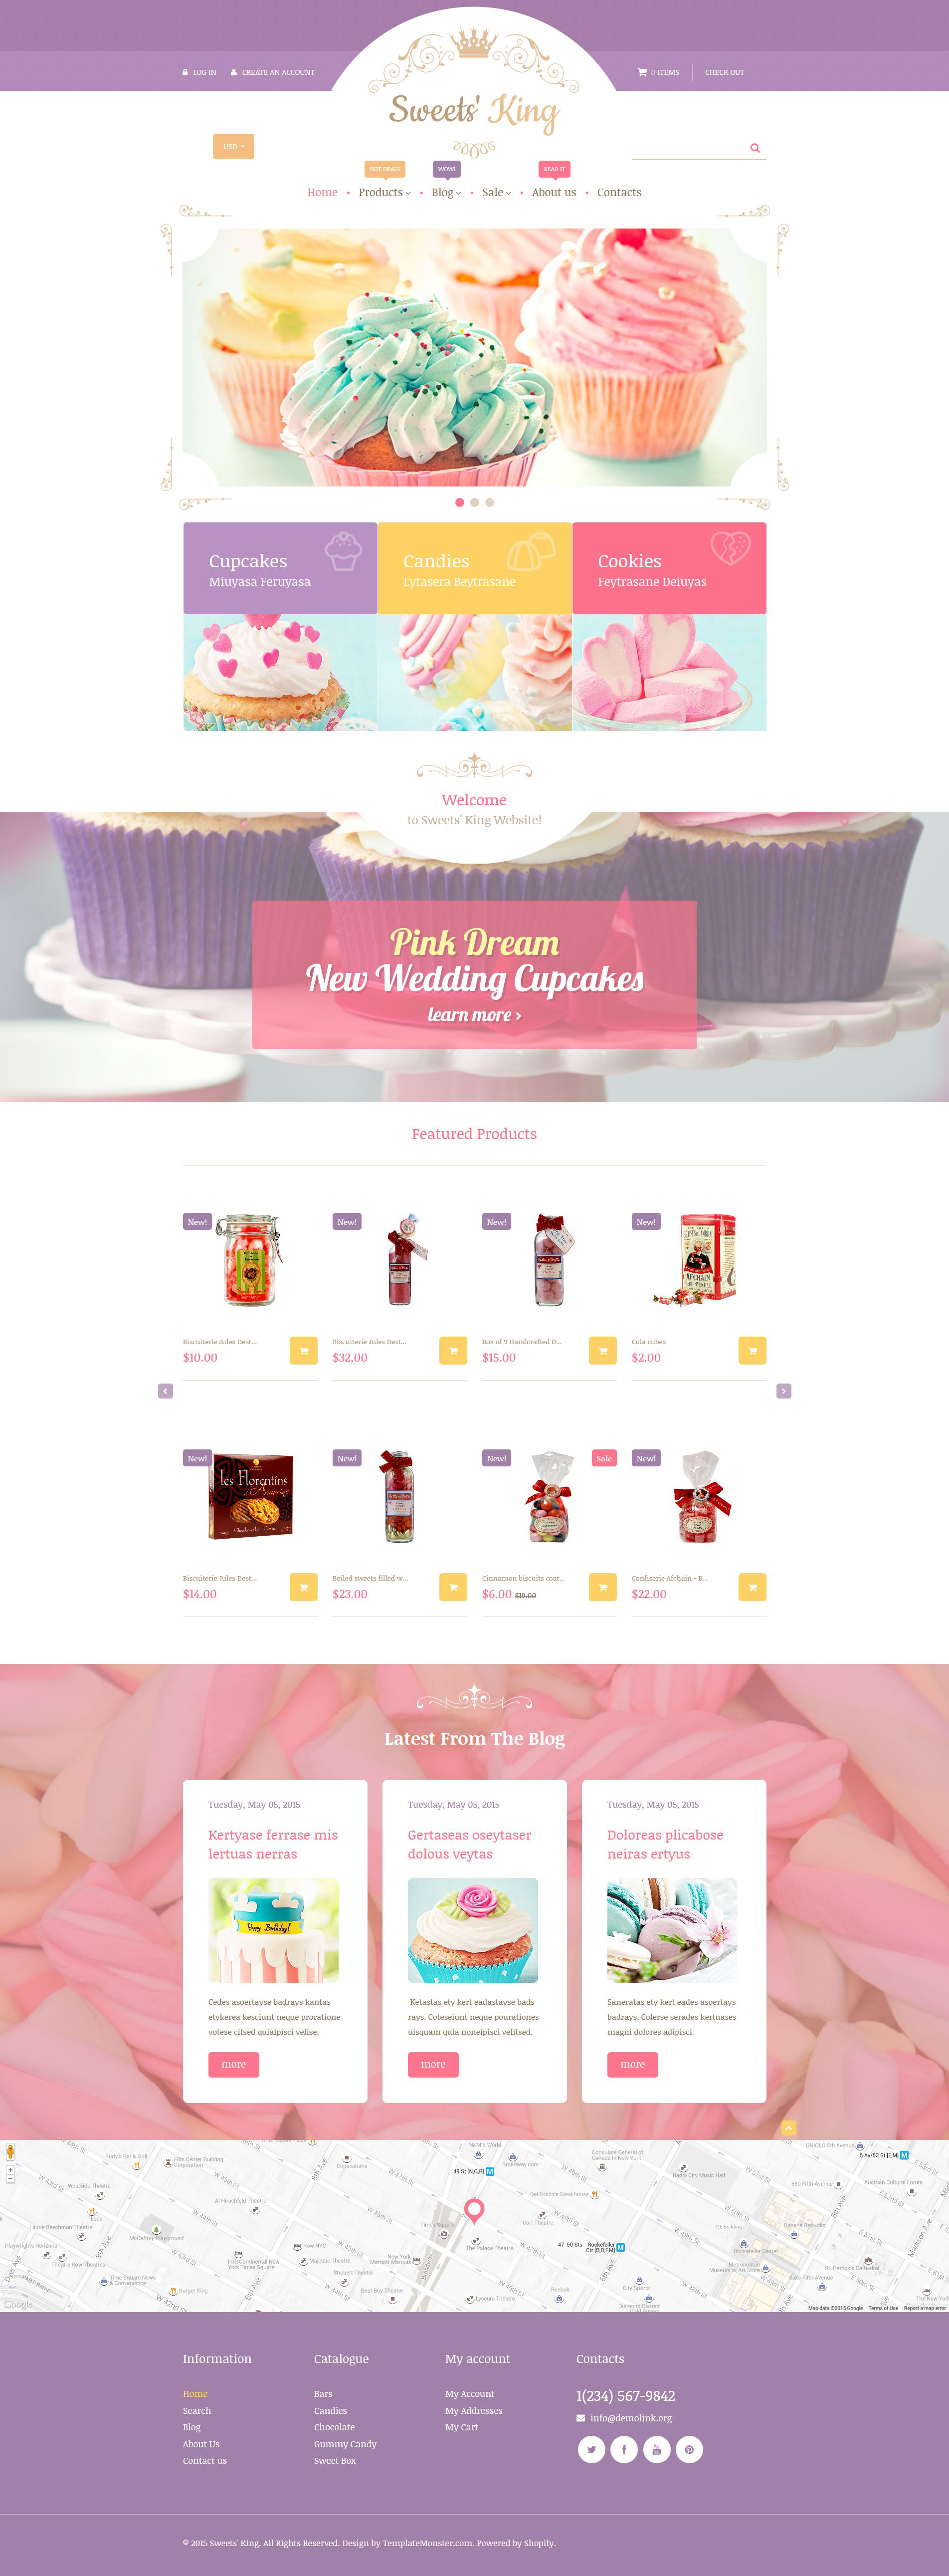 The Sweet King Shopify Design 53922, one of the best Shopify themes of its kind (food & drink, most popular), also known as sweet king Shopify template, life Shopify template, sweets Shopify template, house Shopify template, candy store Shopify template, chocolate Shopify template, candy Shopify template, nuts Shopify template, raisin Shopify template, products Shopify template, services Shopify template, order Shopify template, boxed Shopify template, chocolate Shopify template, assortment Shopify template, butter Shopify template, cream Shopify template, fruits Shopify template, gourmet Shopify template, pretzel Shopify template, truffles Shopify template, sugar Shopify template, free gummy Shopify template, chocolate Shopify template, bar Shopify template, dark milk Shopify template, white hot chocolate Shopify template, peanut Shopify template, creme Shopify template, brulee Shopify template, ginger Shopify template, pistachio and related with sweet king, life, sweets, house, candy store, chocolate, candy, nuts, raisin, products, services, order, boxed, chocolate, assortment, butter, cream, fruits, gourmet, pretzel, truffles, sugar, free gummy, chocolate, bar, dark milk, white hot chocolate, peanut, creme, brulee, ginger, pistachio, etc.